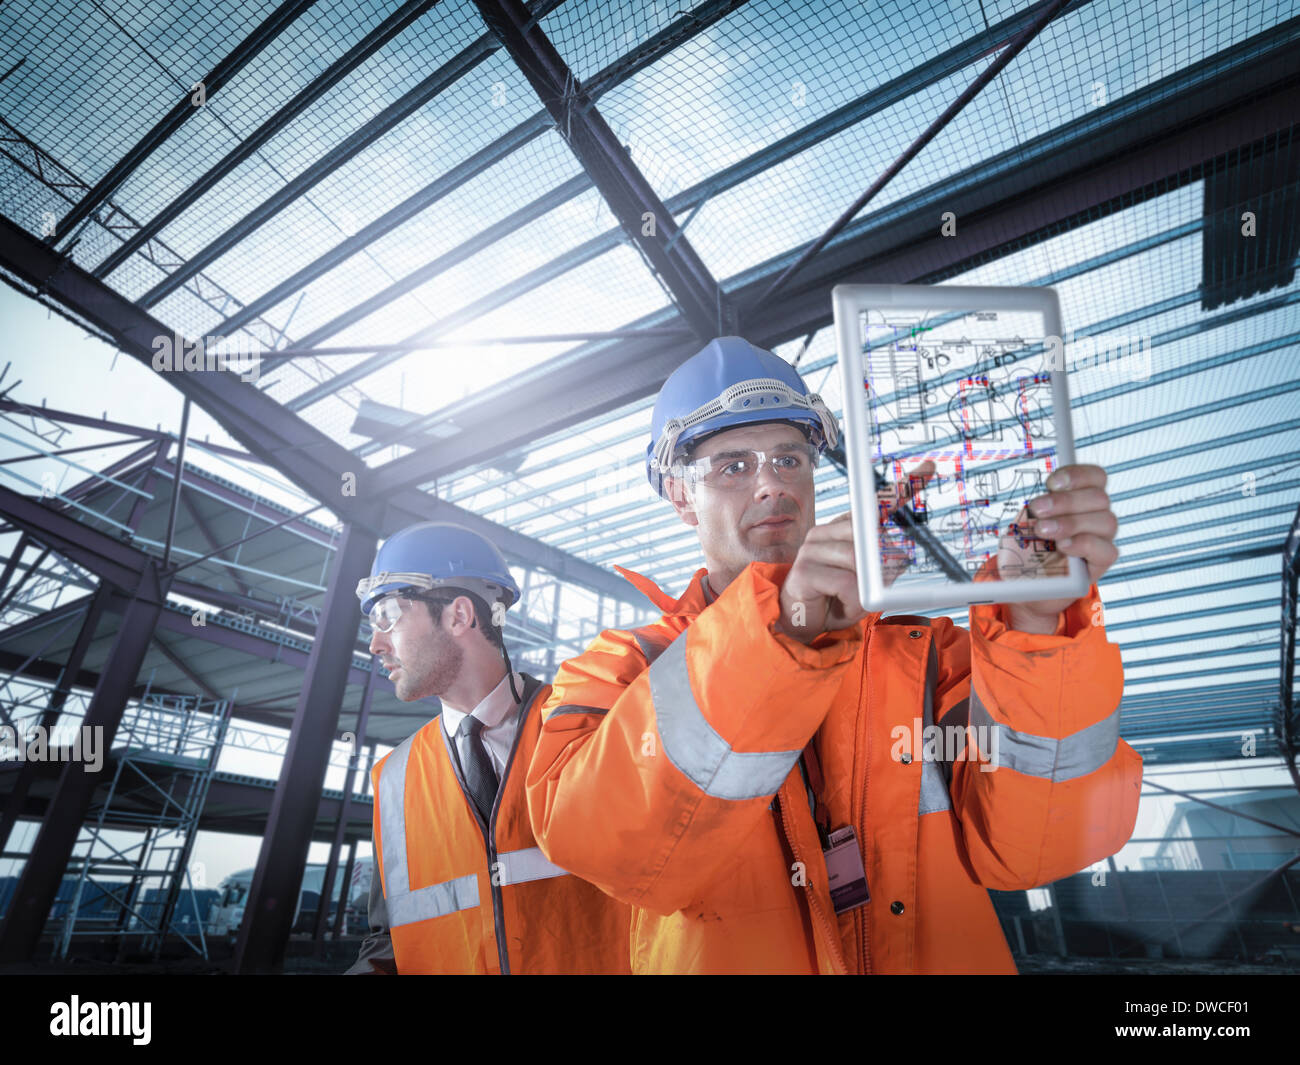 Builders working on plan details using digital tablet - Stock Image